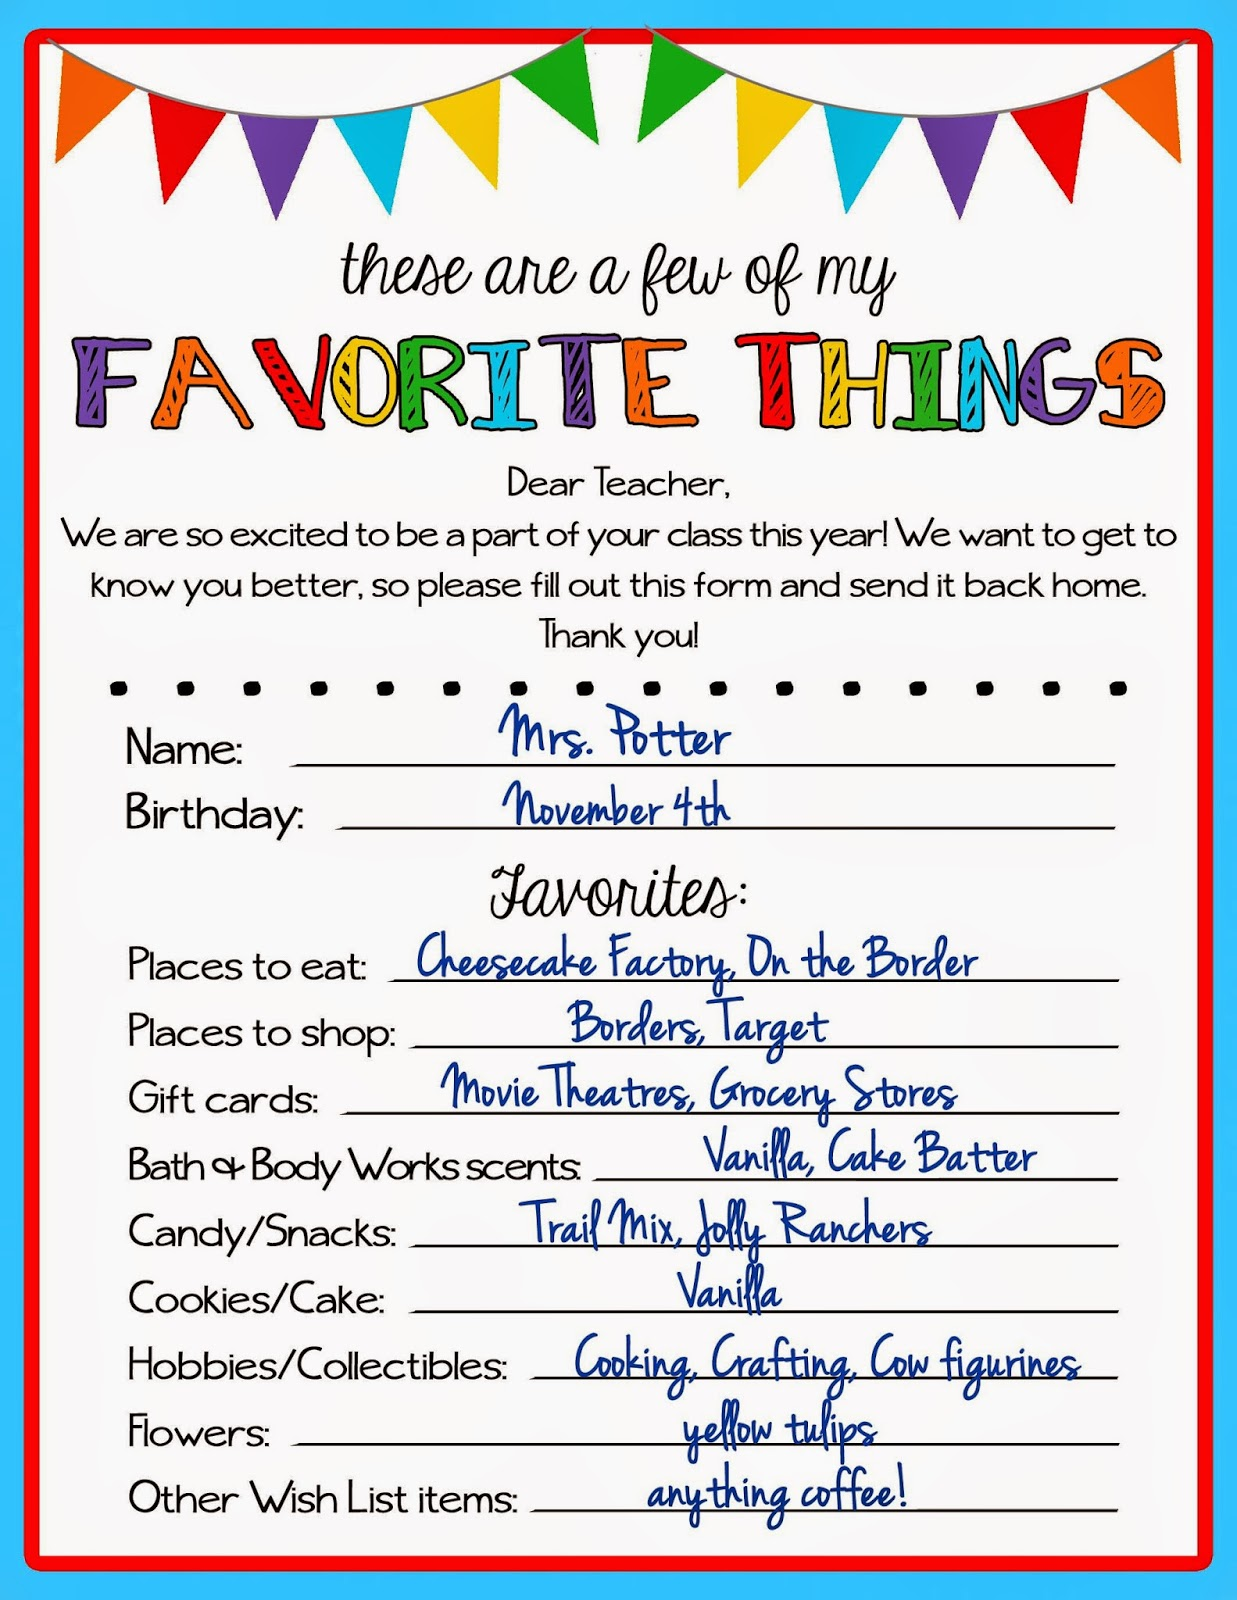 worksheet Get To Know You Worksheet teacher favorite things questionnaire kicking ass crafting want to get know